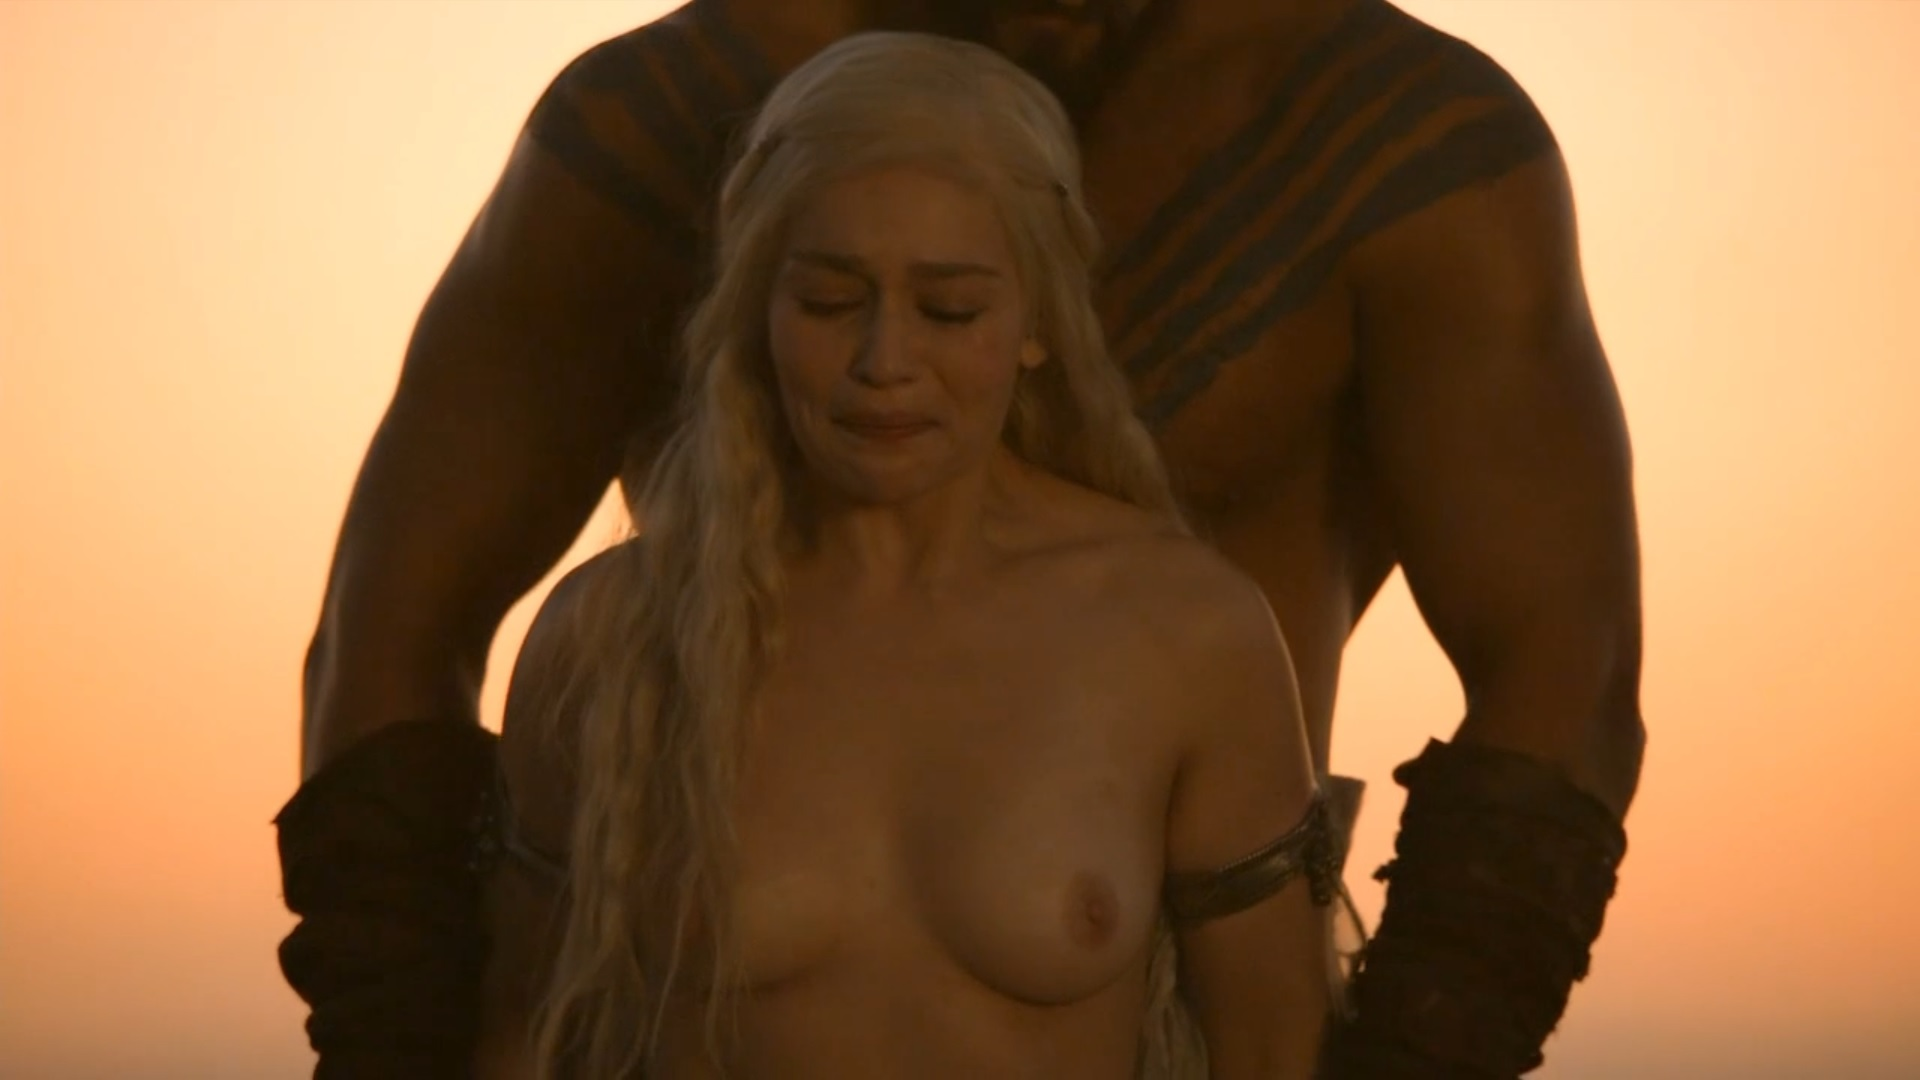 Emilia Clarke Nude Boobs And Nipple In Game Of Thrones -5483